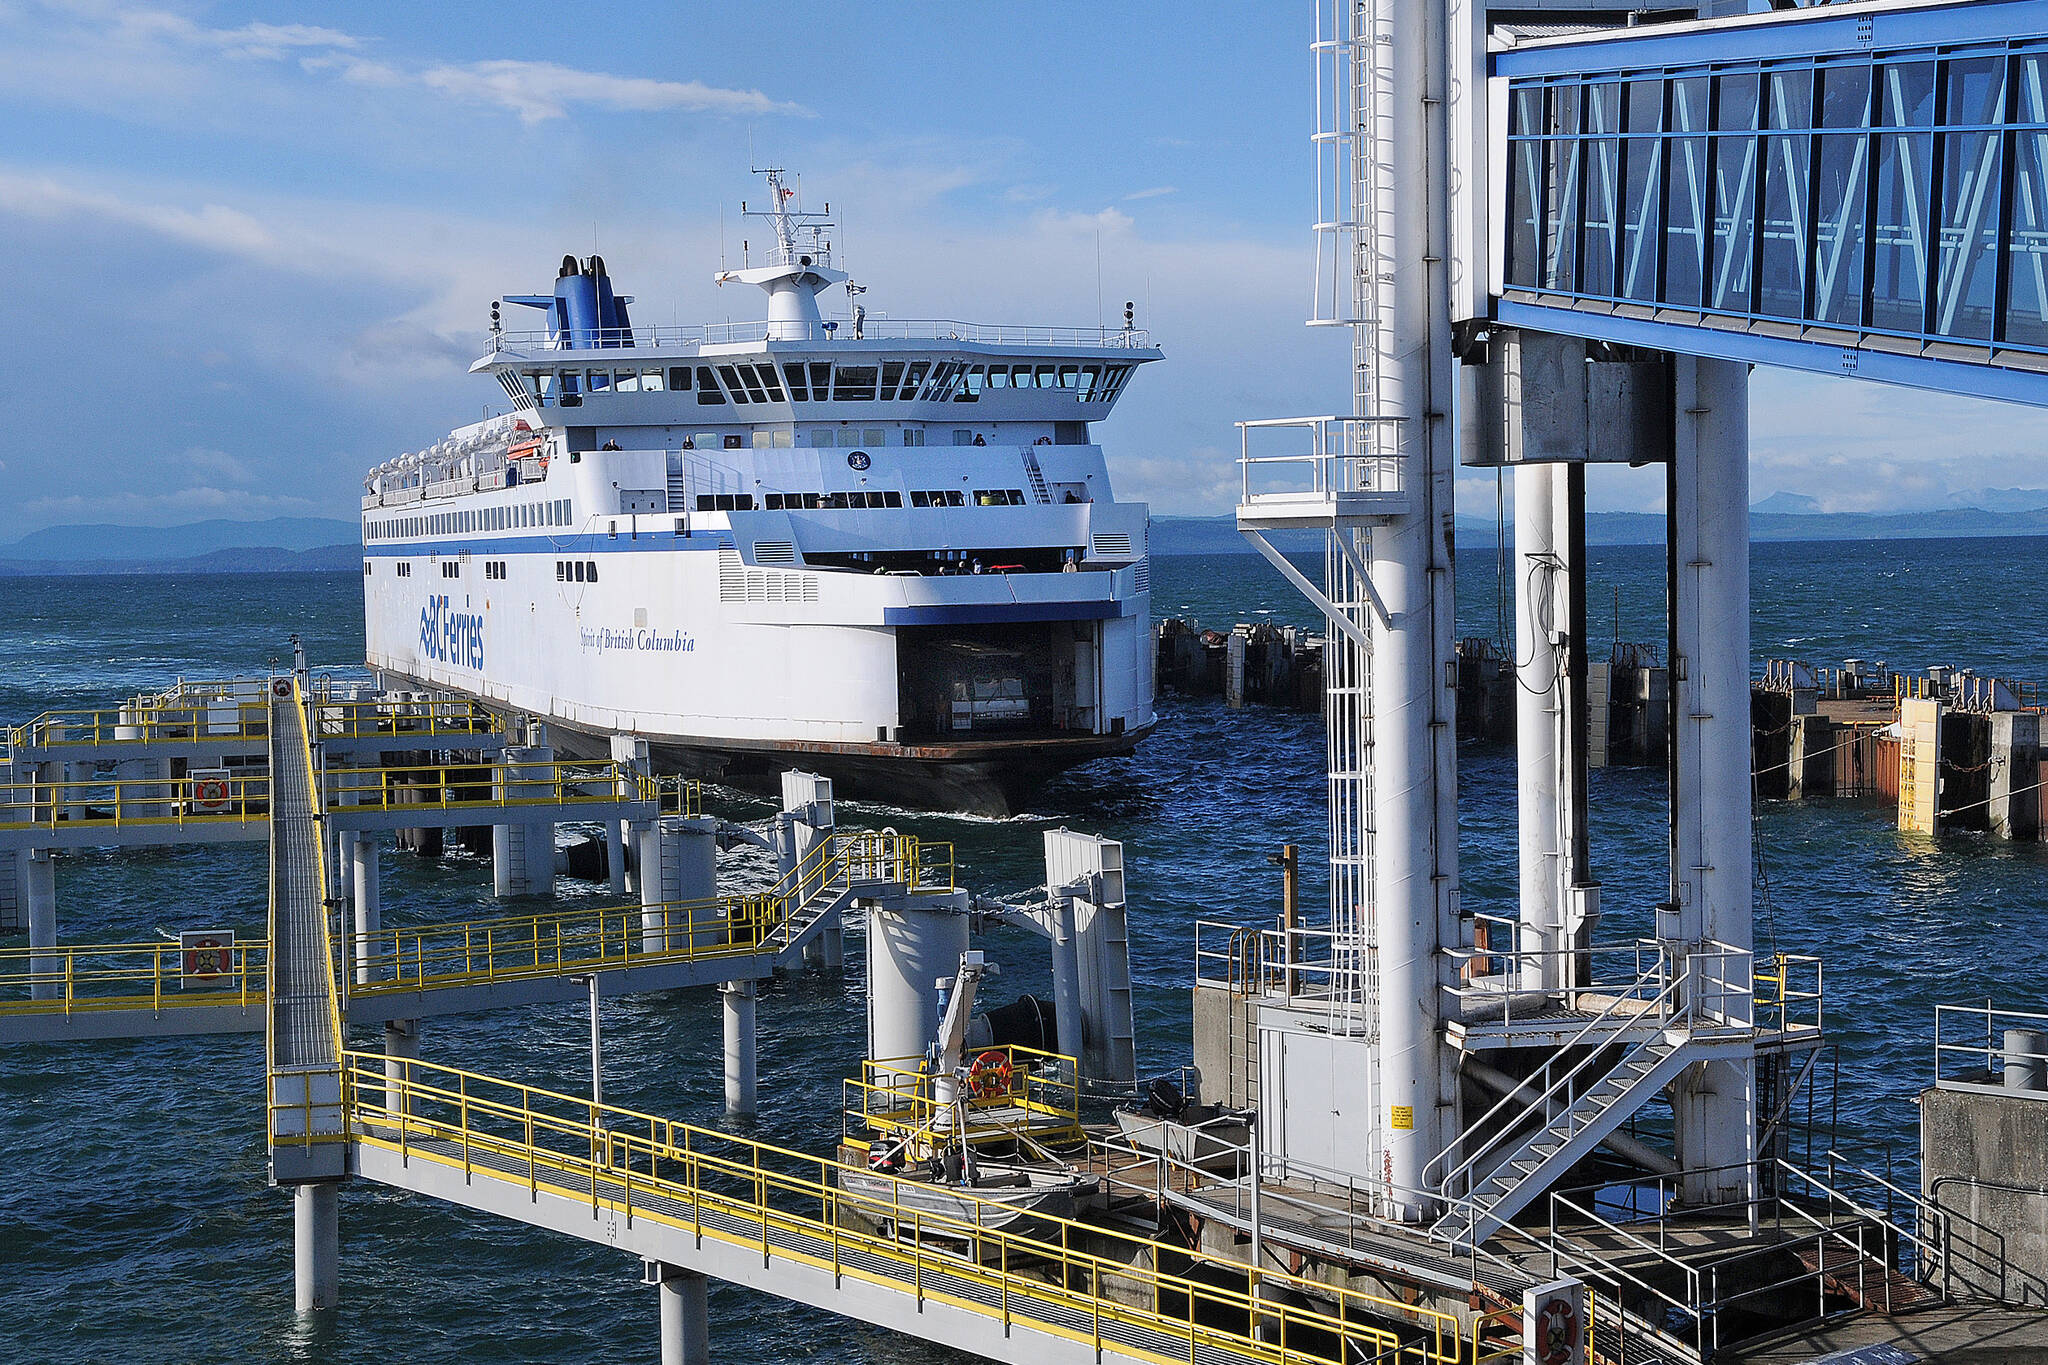 Thanksgiving sailings are expected to be busier than usual while the Spirit of Vancouver Island ferry is being repaired. (Black Press Media file photo)